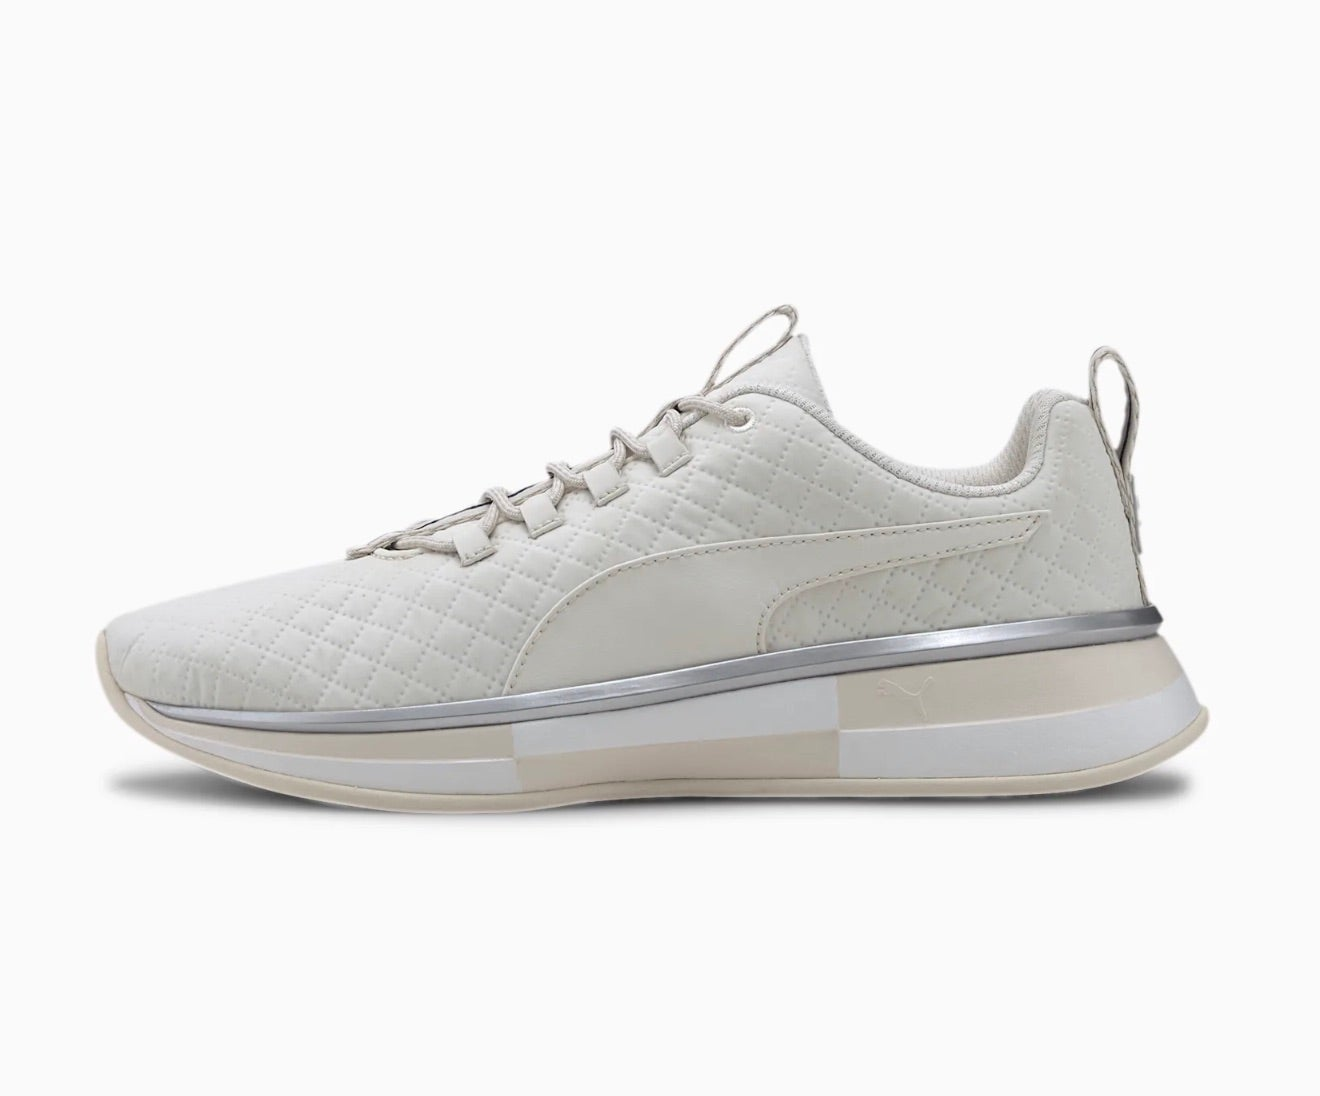 Puma SG Runner Quilted Women's Training Shoes